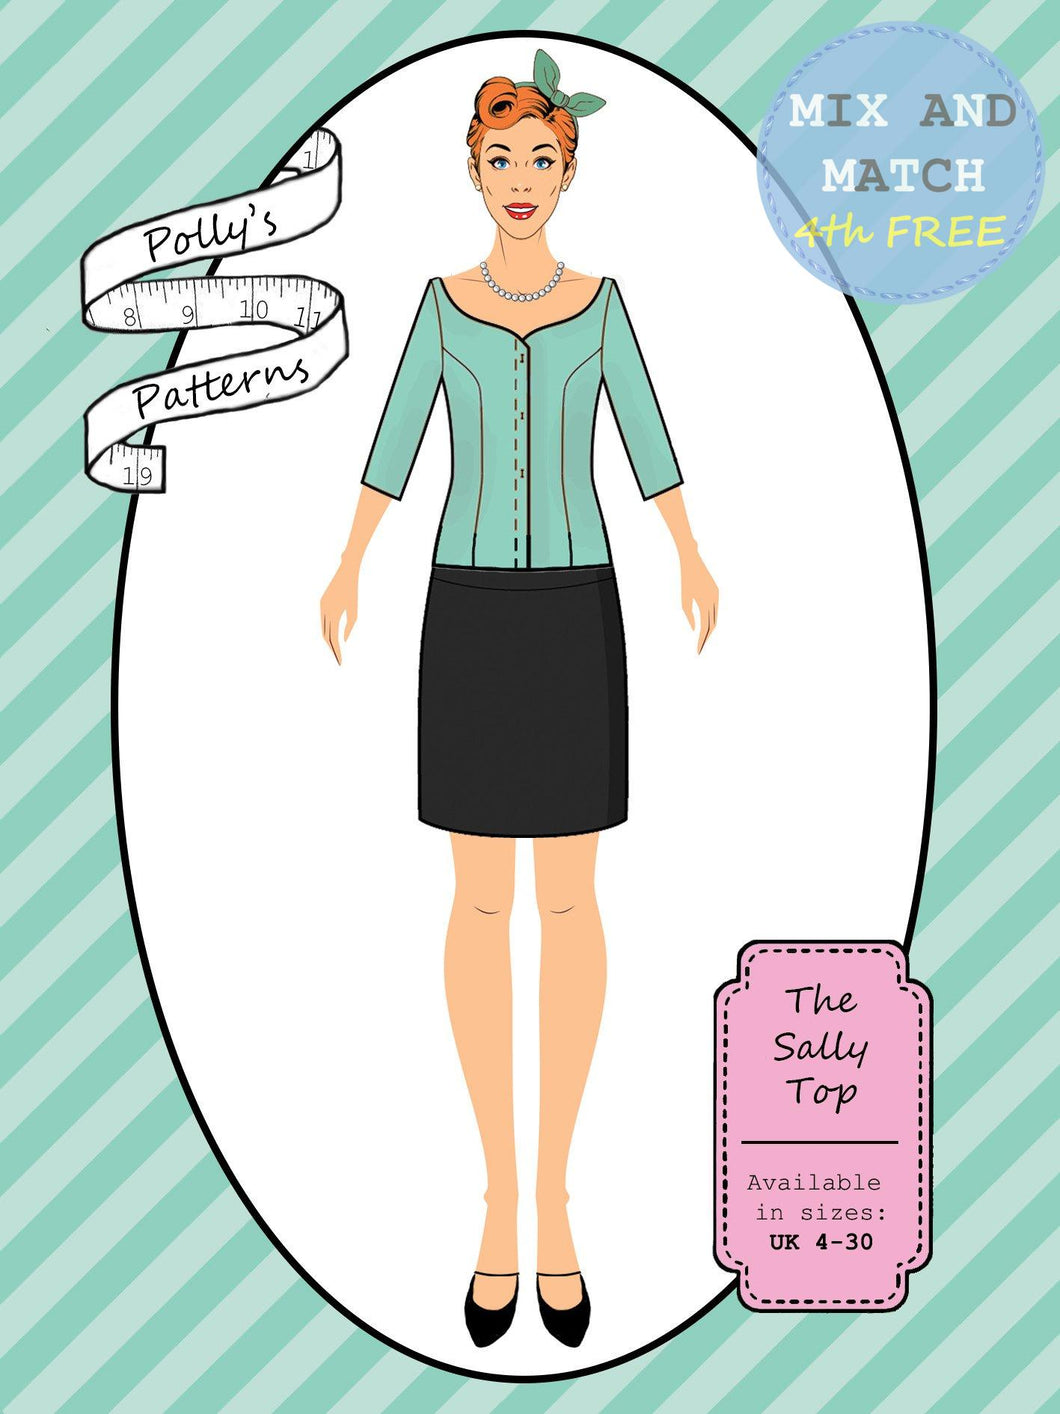 Polly's patterns - The Sally Top - Pattern Shop